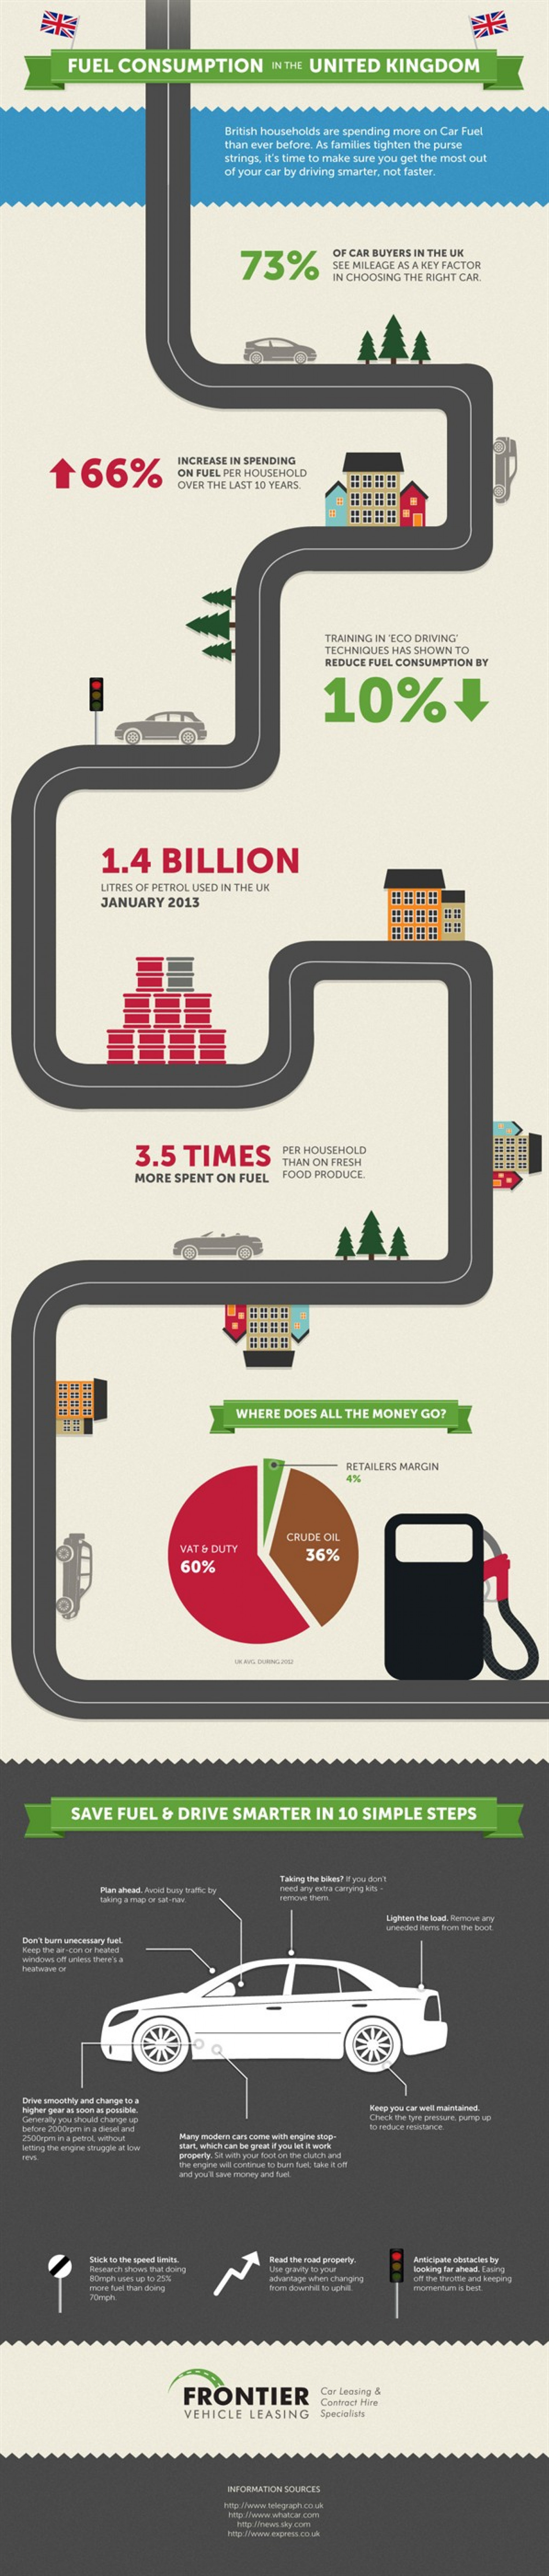 Fuel Consumption in the United Kingdom Infographic